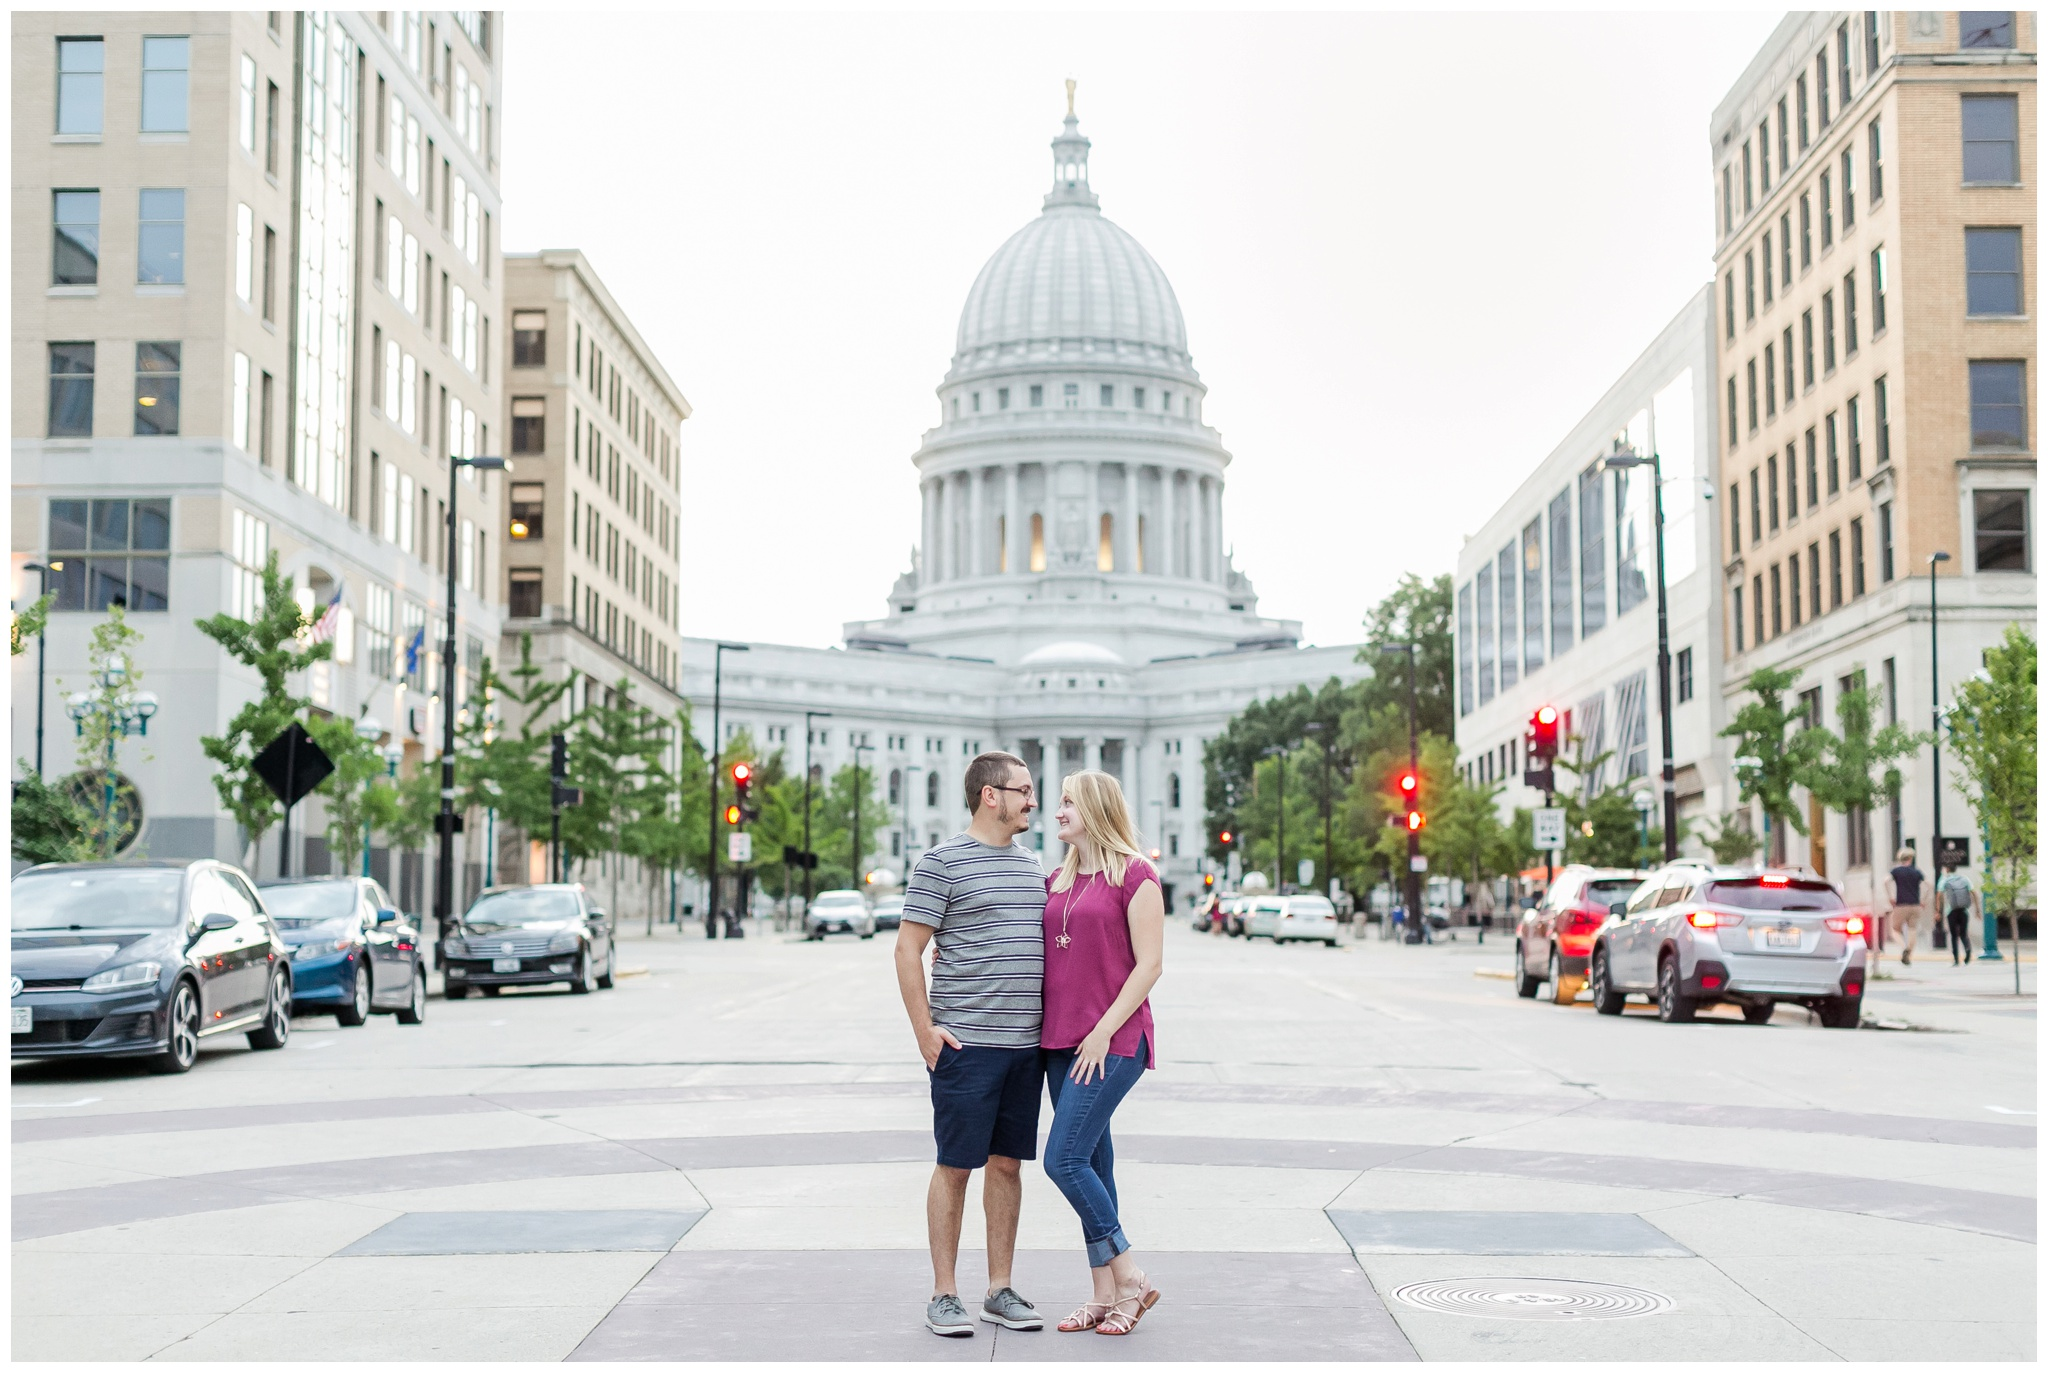 Downtown_madison_wisconsin_engagement_session_4223.jpg